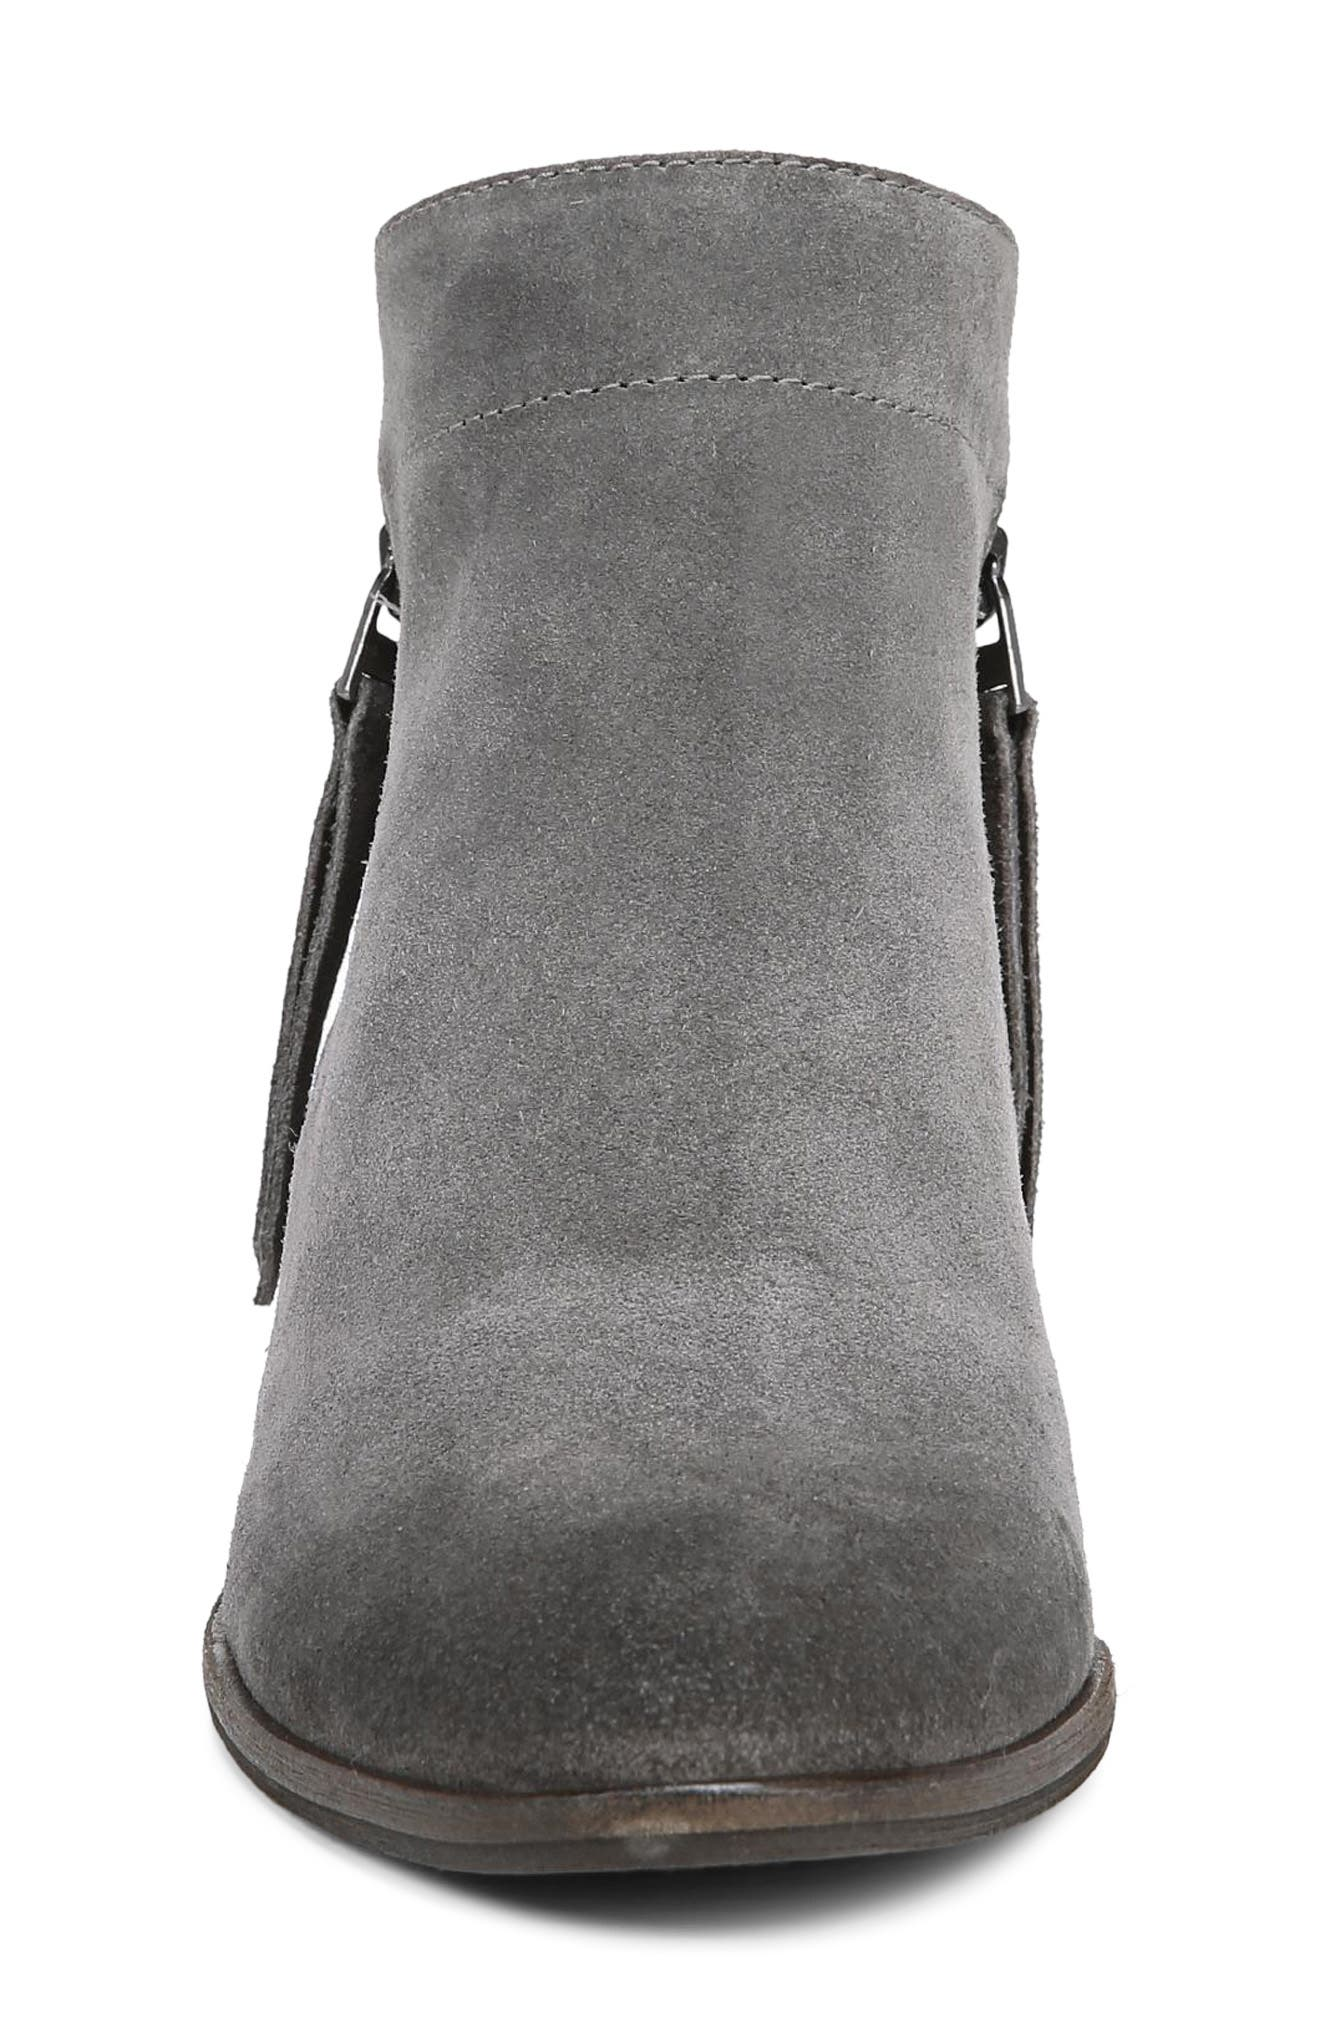 Packer Bootie,                             Alternate thumbnail 4, color,                             STEEL GREY SUEDE LEATHER